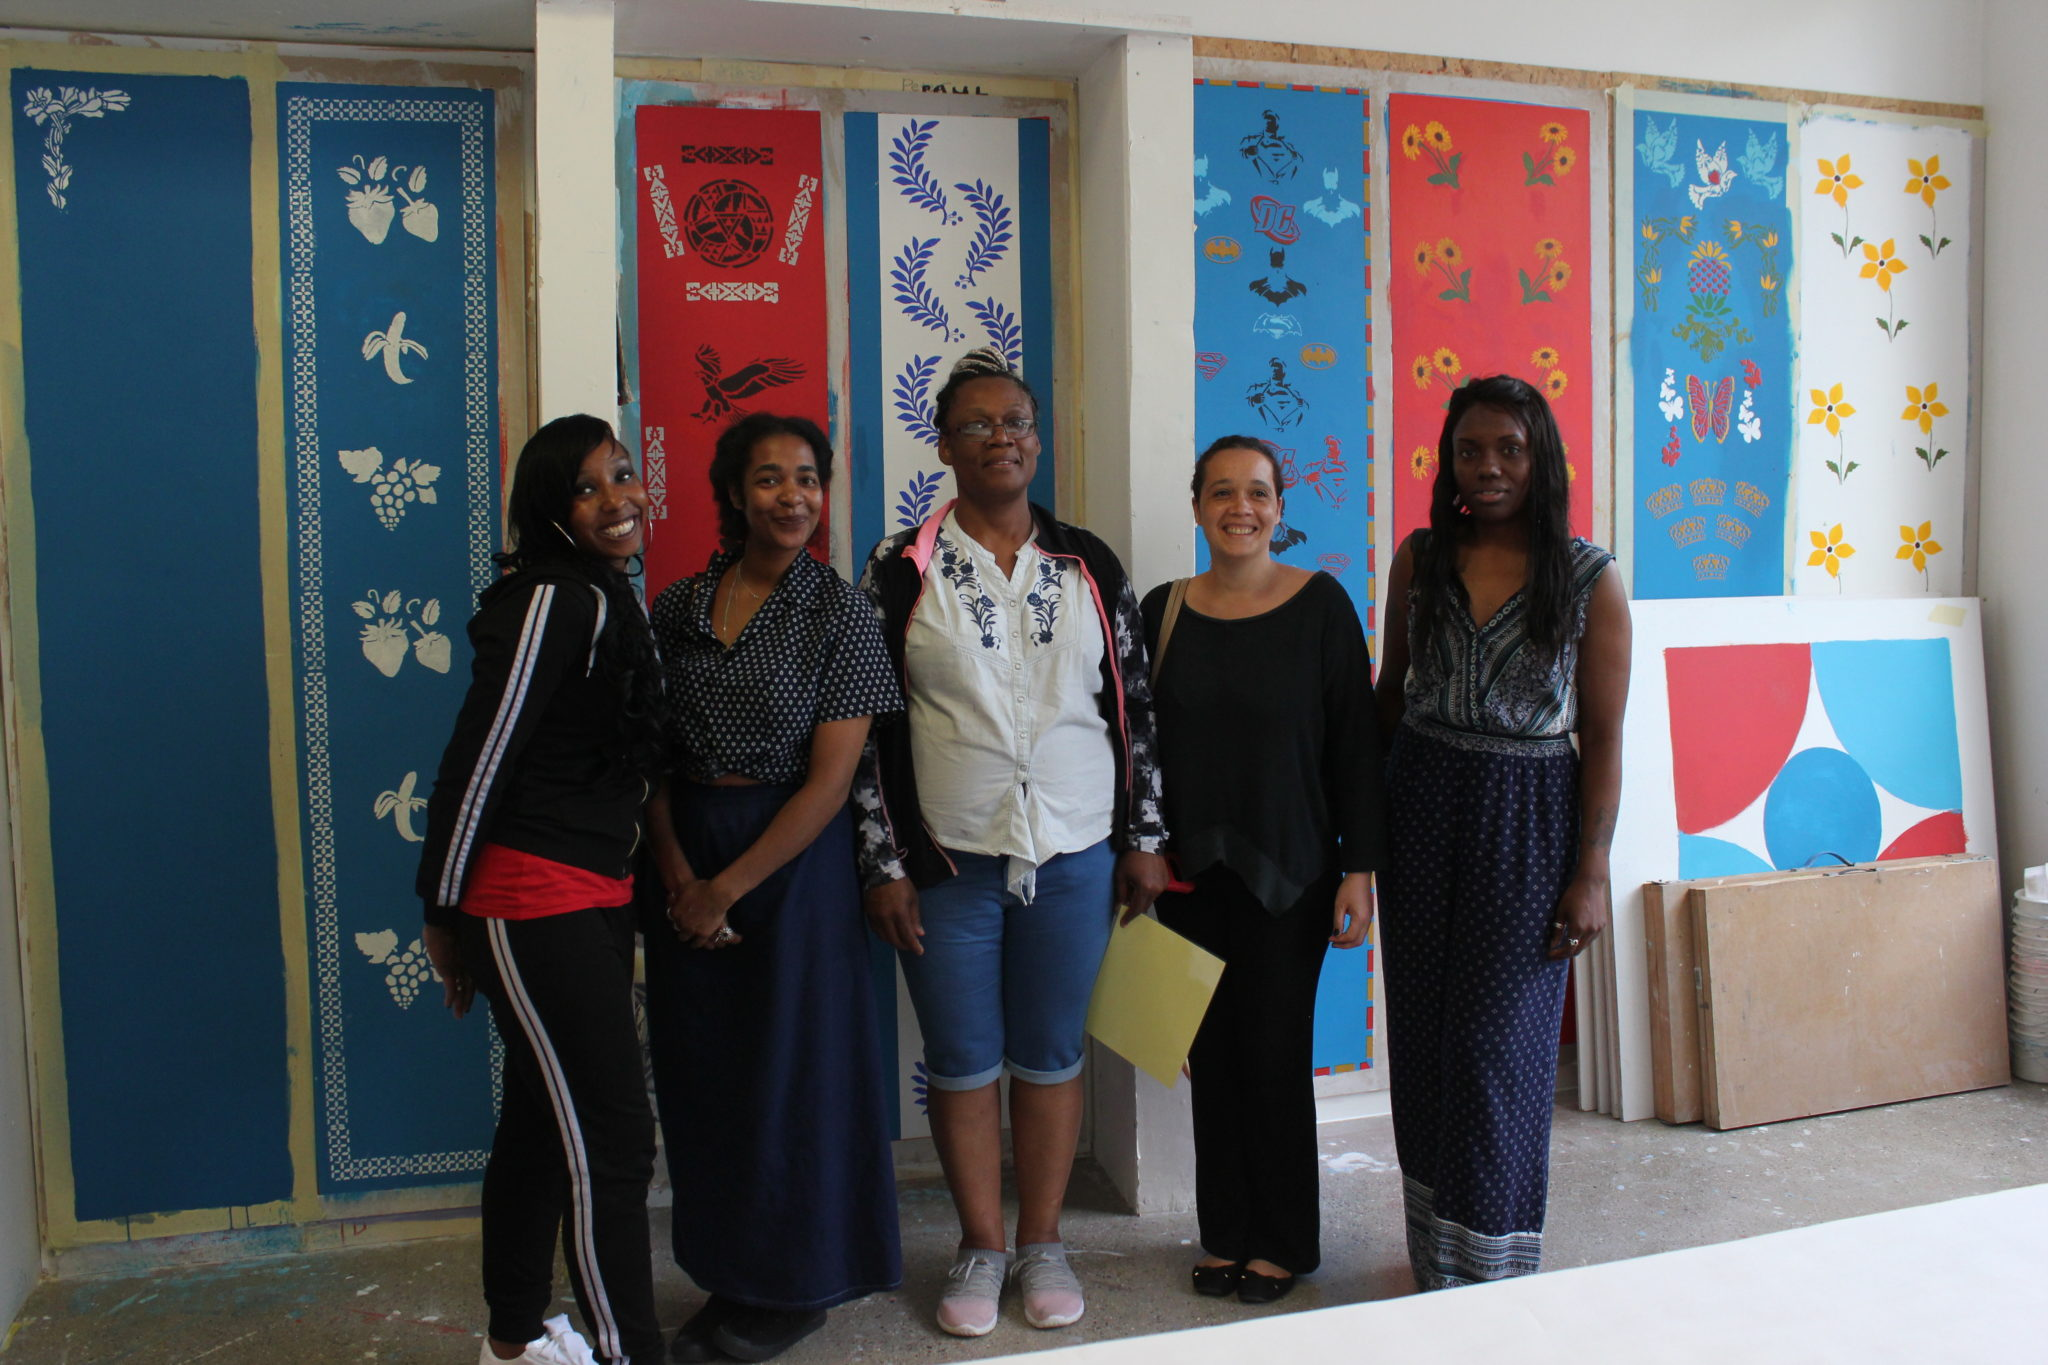 Thames Reach women use new painting skills to makeover community centre in Peckham